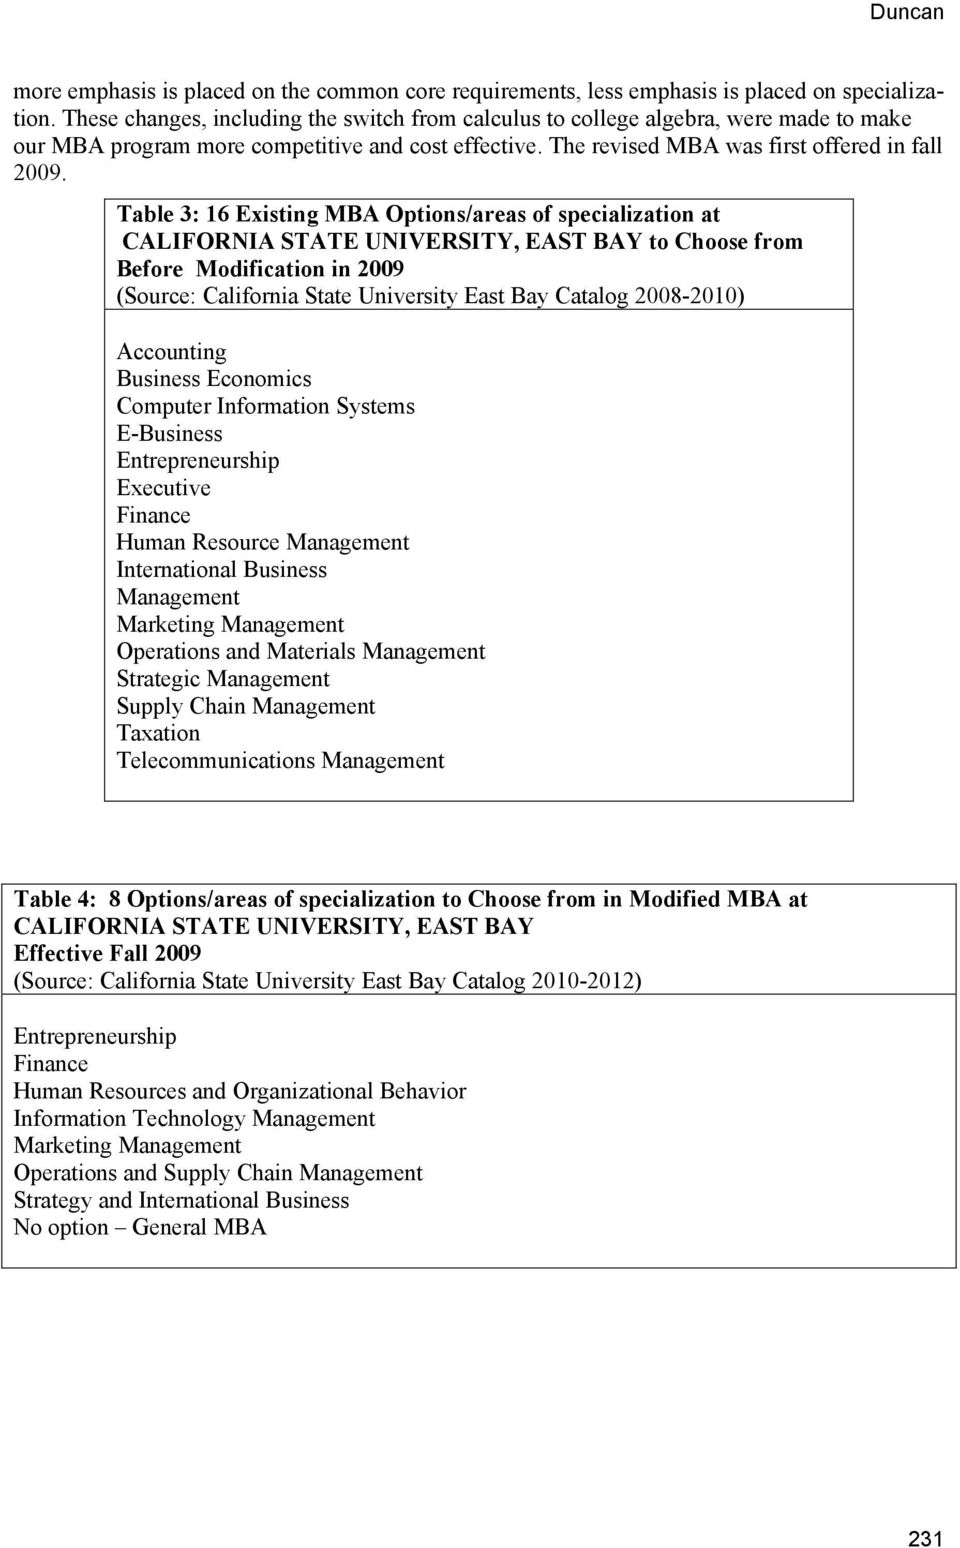 Table 3: 16 Existing MBA Options/areas of specialization at CALIFORNIA STATE UNIVERSITY, EAST BAY to Choose from Before Modification in 2009 (Source: California State University East Bay Catalog